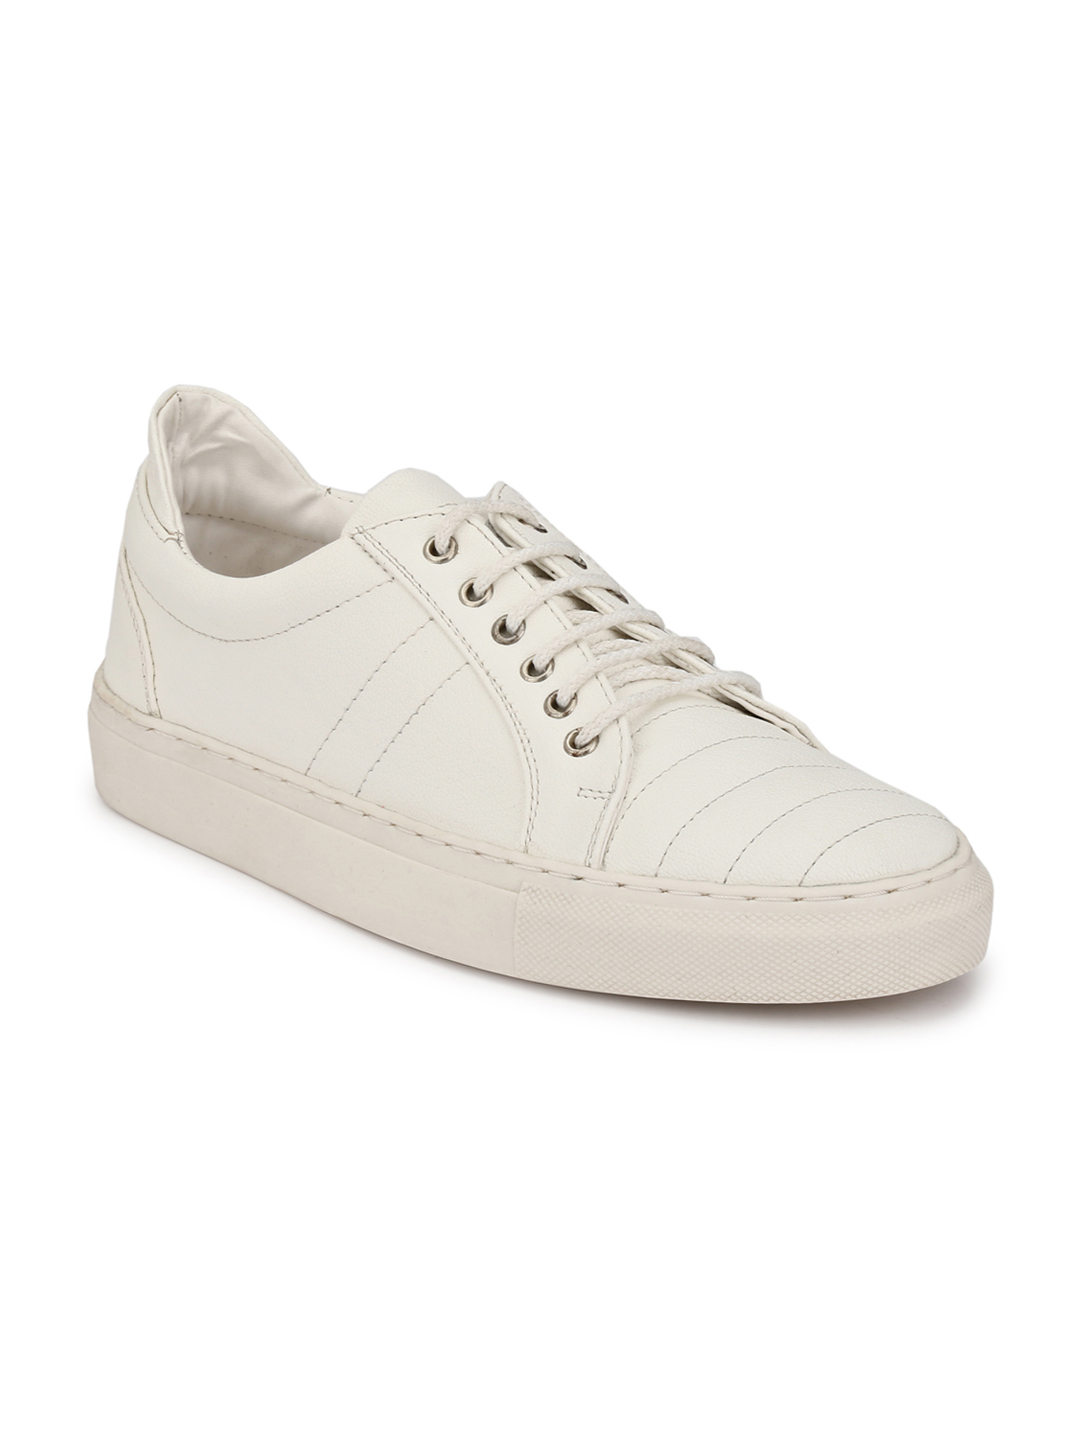 AADY AUSTIN | Aady Austin Hepner Quilted Sneakers - White